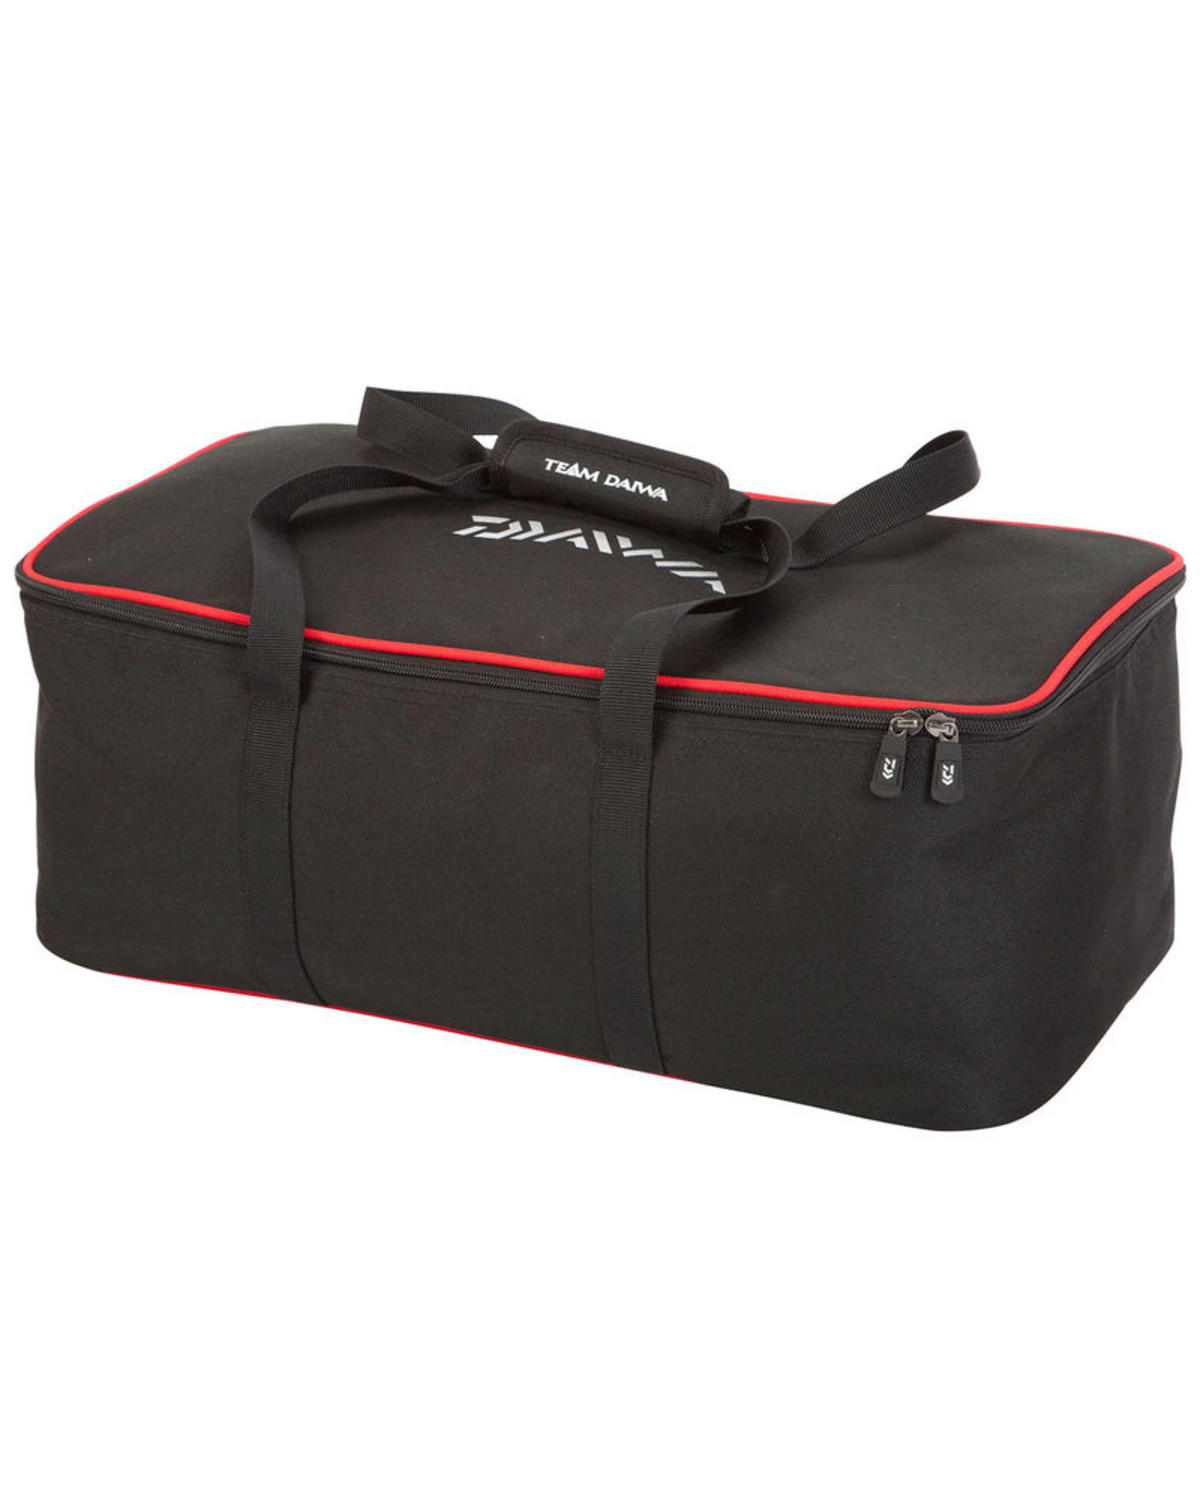 TEAM DAIWA DELUXE COOL BAG  DTDCB1